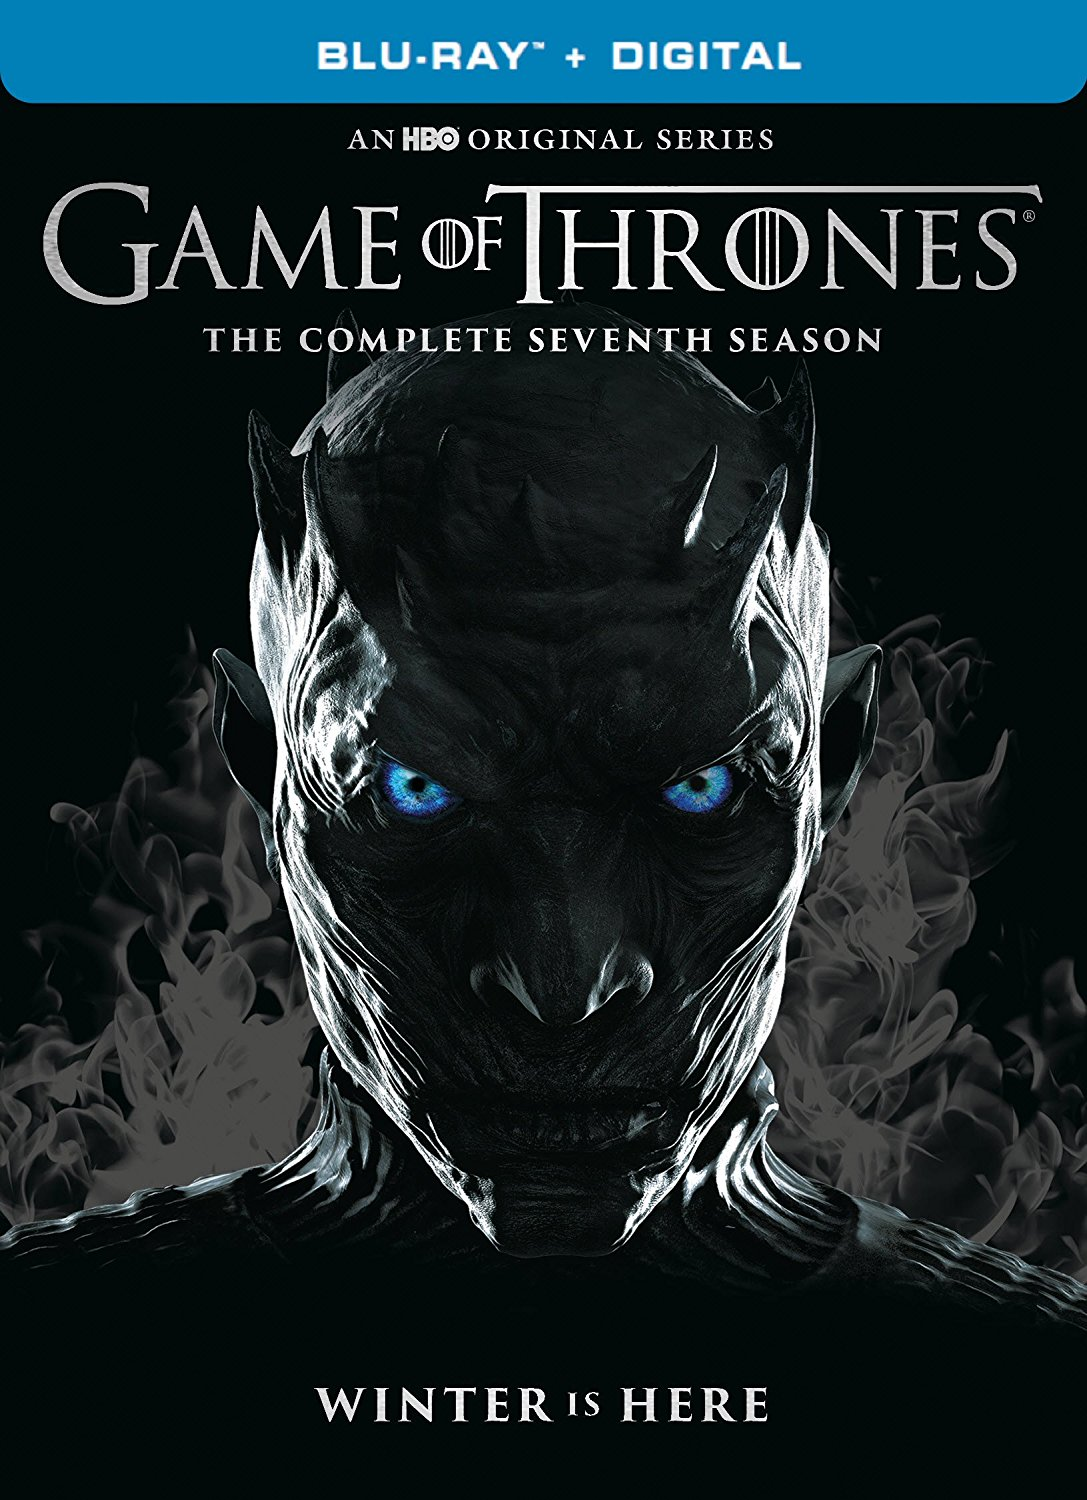 HBO Dates Game Of Thrones Season 7 Blu-Ray; Special Features Include An Animated History Of Westeros